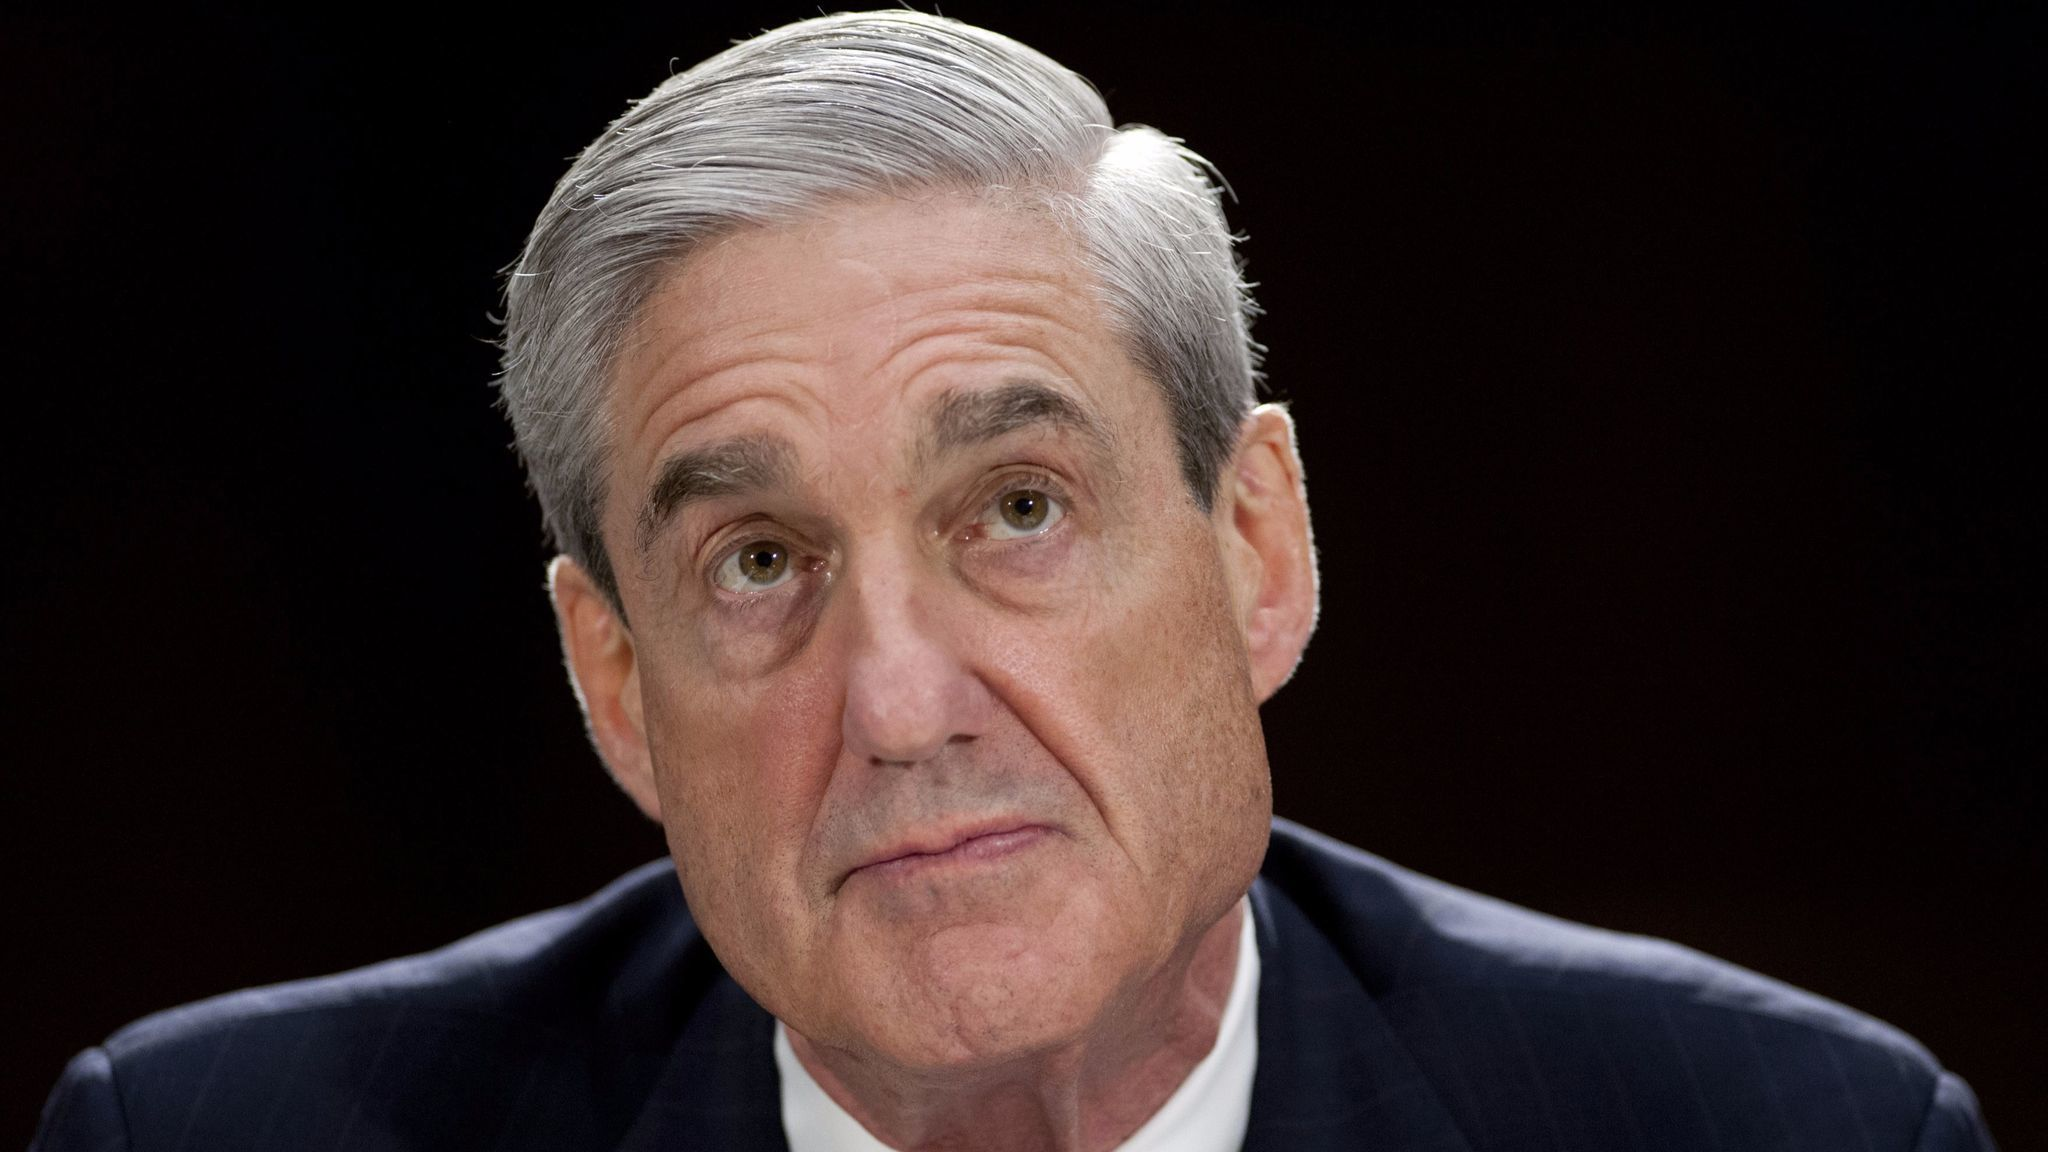 Robert Mueller, then FBI director, testifies at a 2013 hearing.